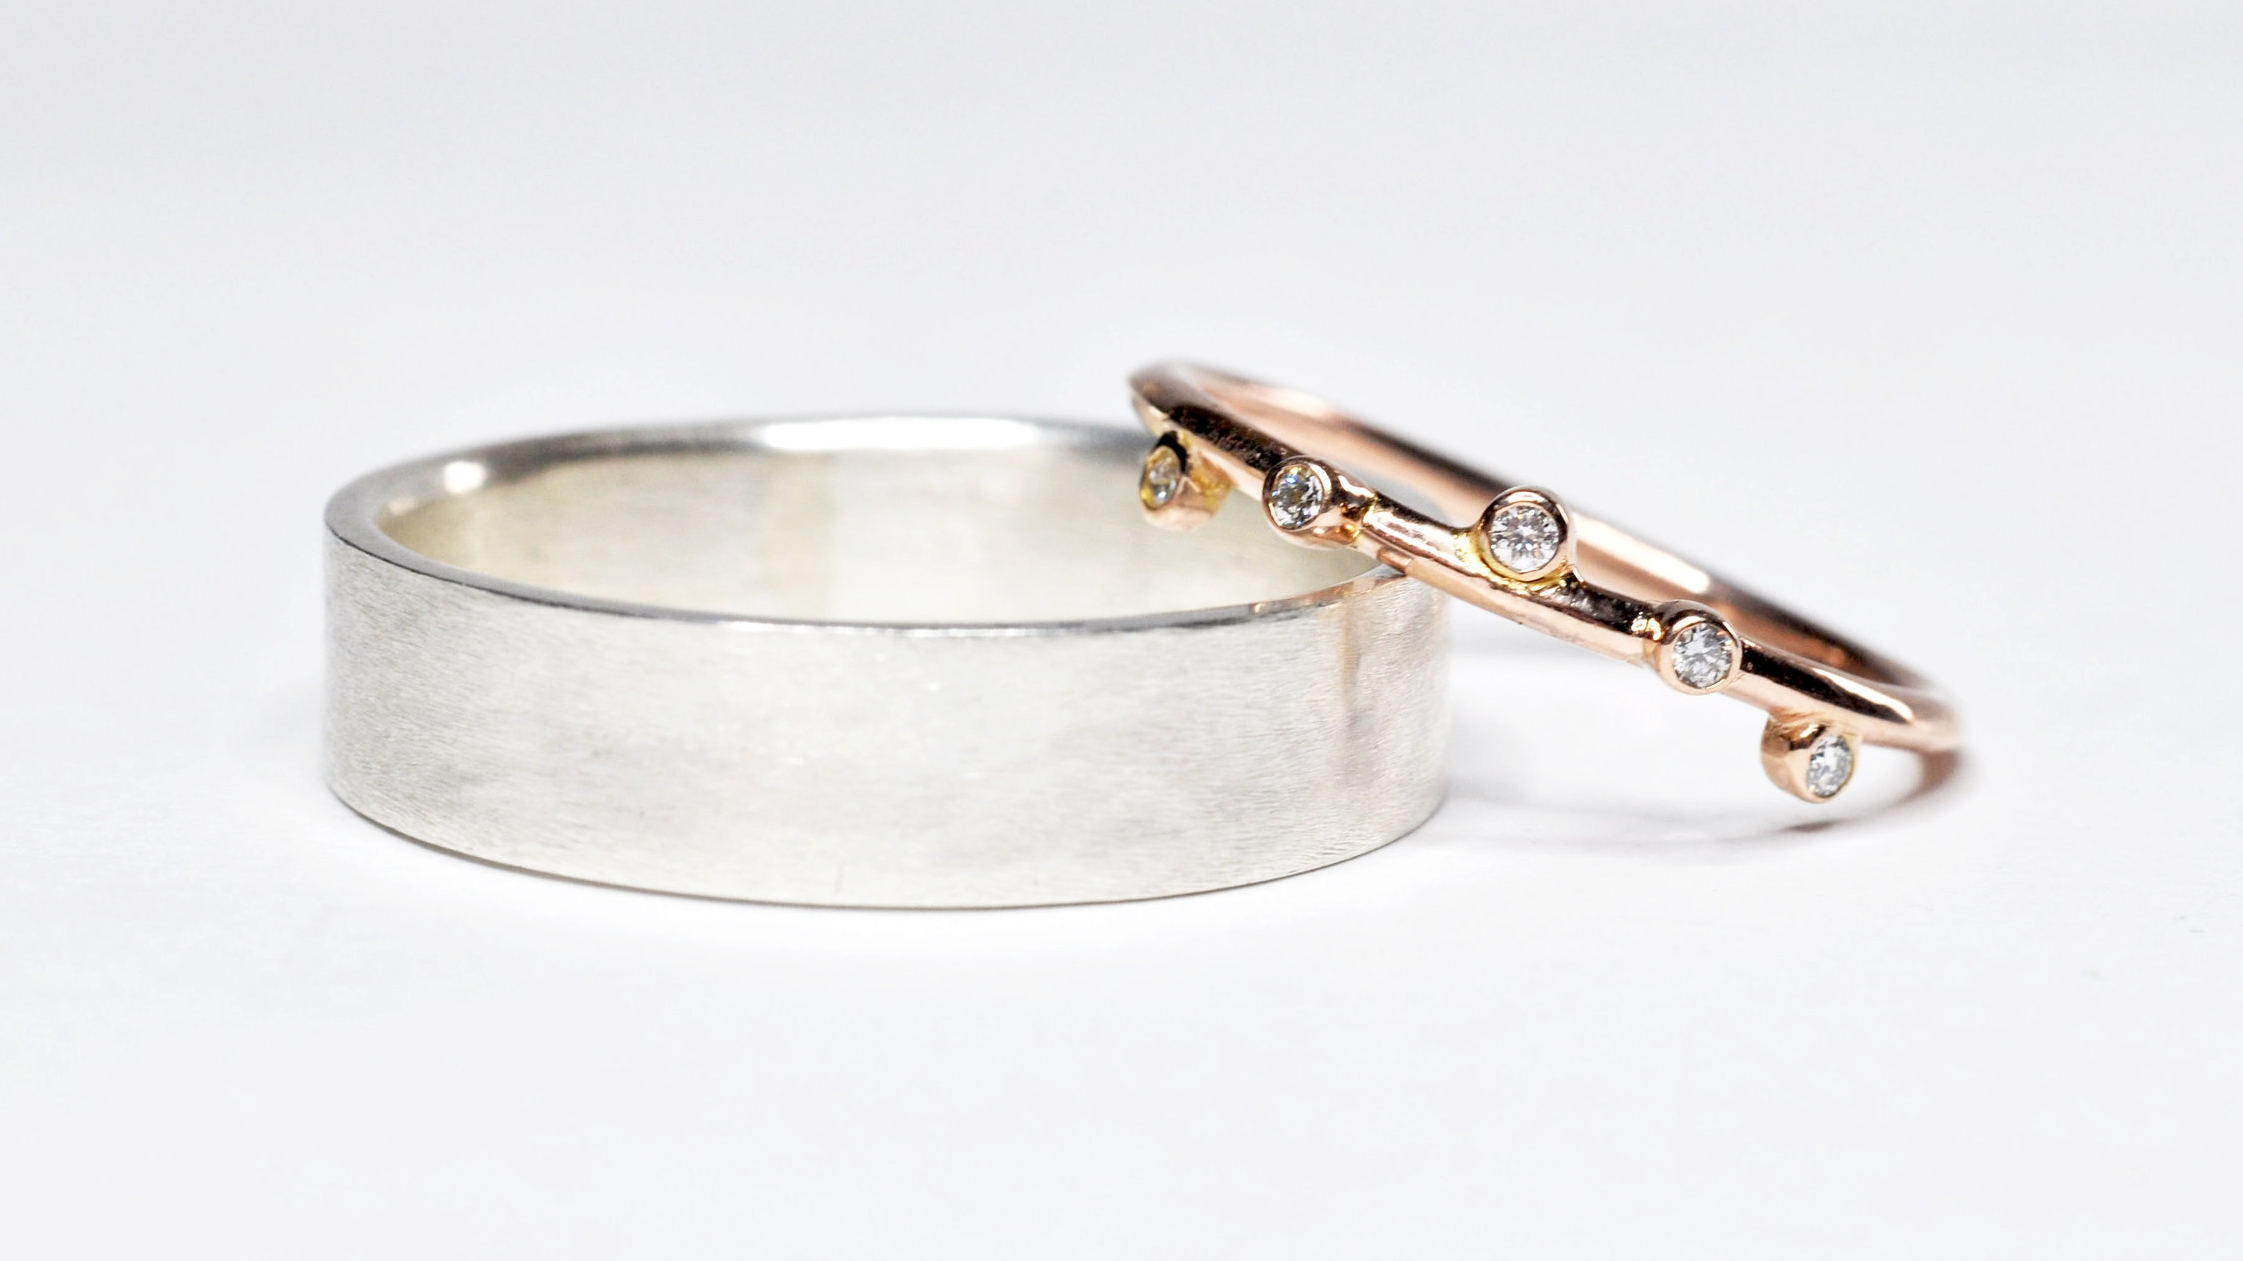 Pictured is a previous bespoke order I was honored to be asked to design and create - a sterling silver band for him and a 14k rose gold with diamonds for her.